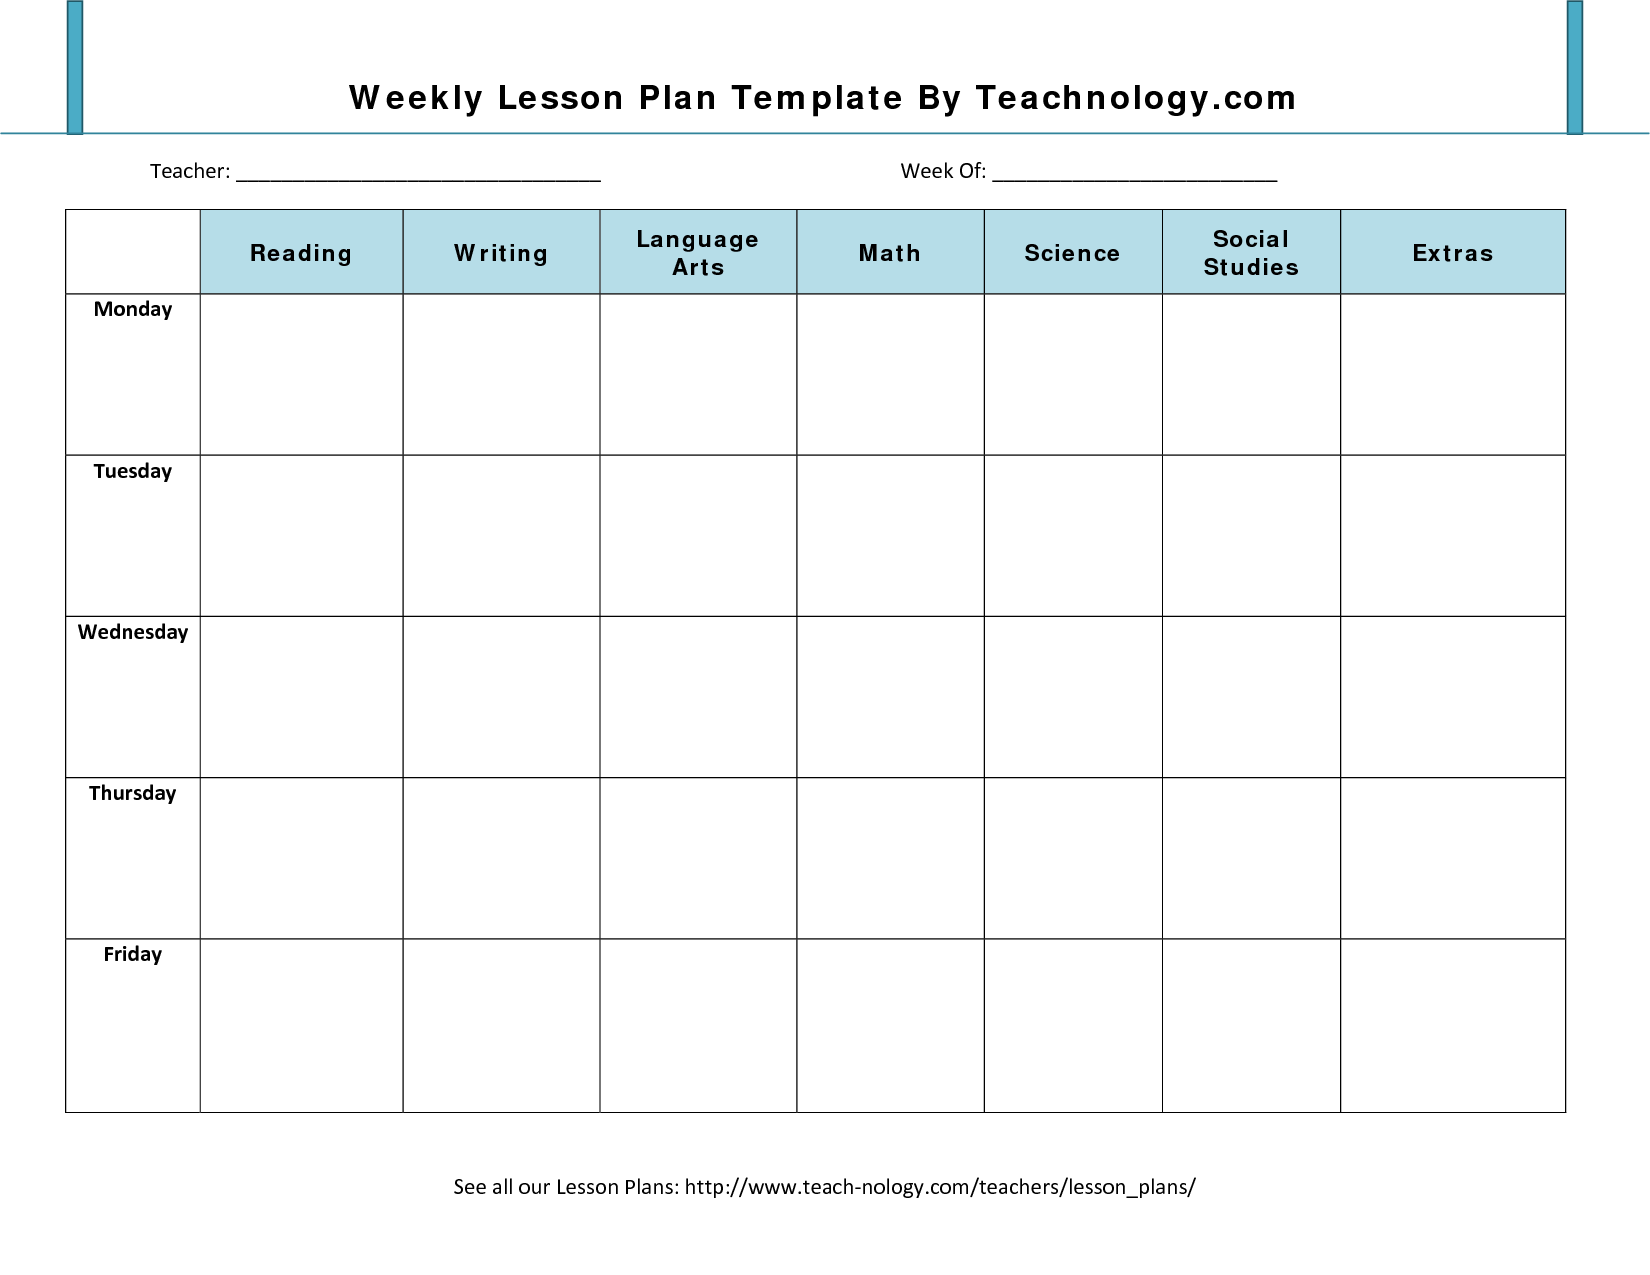 Lesson Plan Format 7 Weekly Lesson Plan Template For